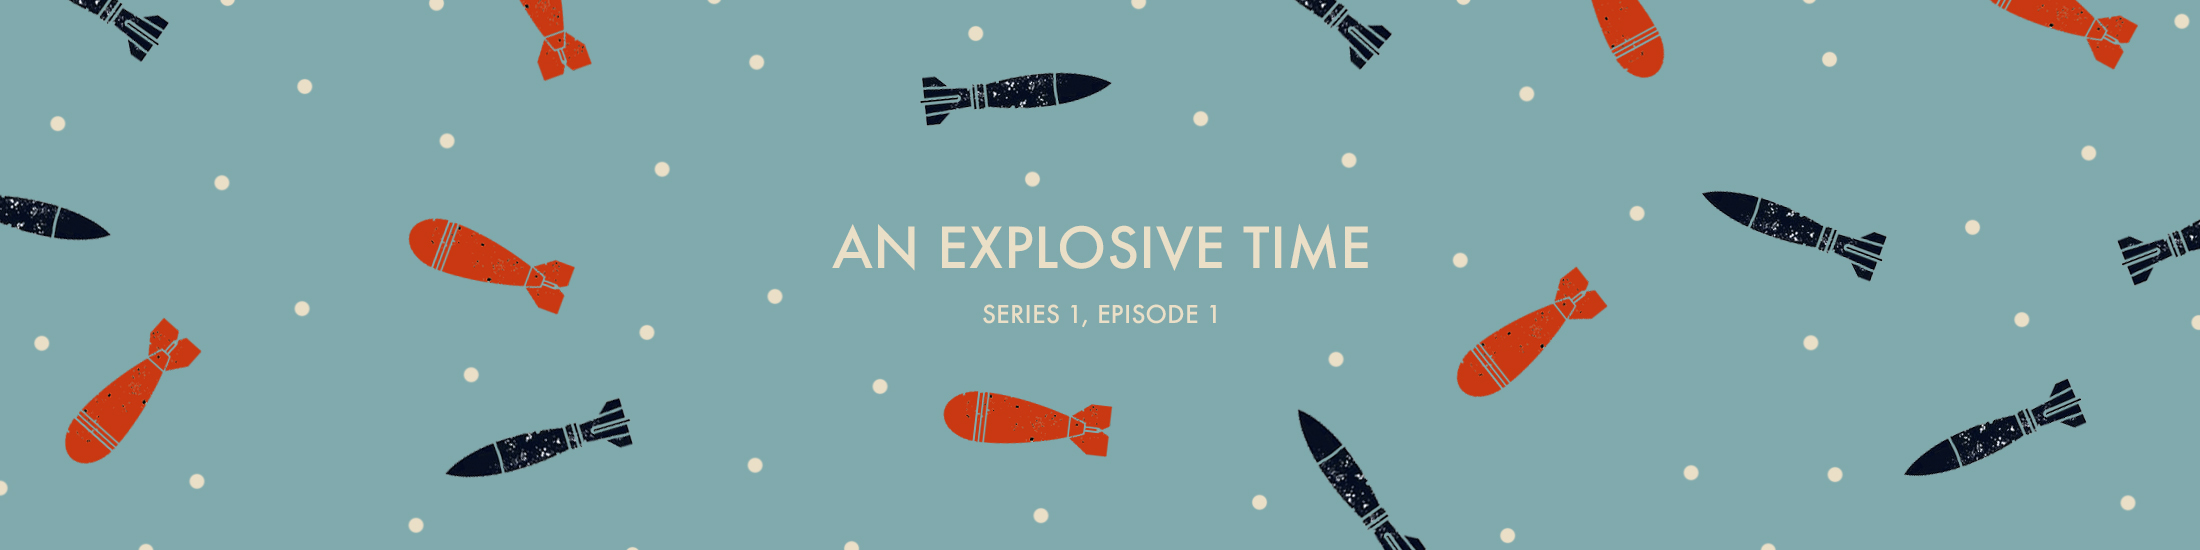 """An Explosive Time"" in text surrounded by dots and WWI bombs"